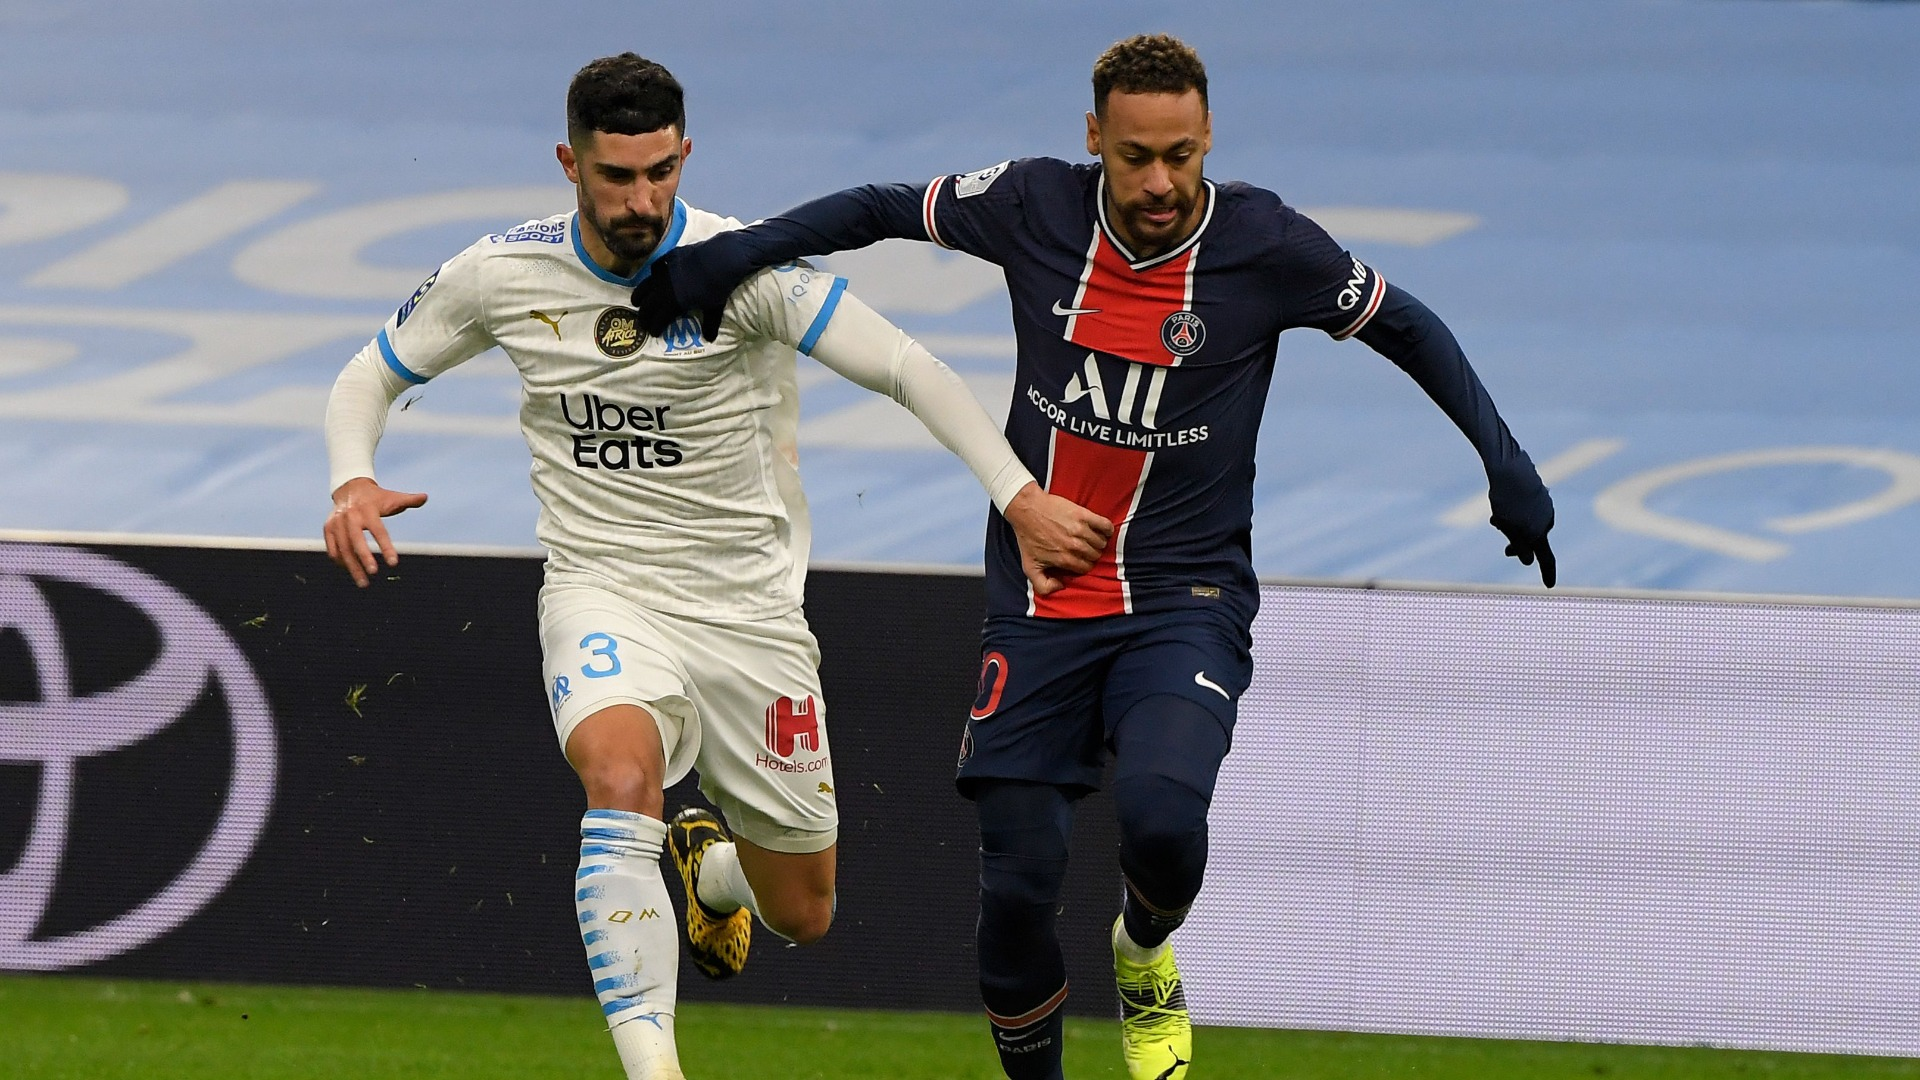 Marseille 0-2 Paris Saint-Germain: No Classique repeat as champions win milestone match